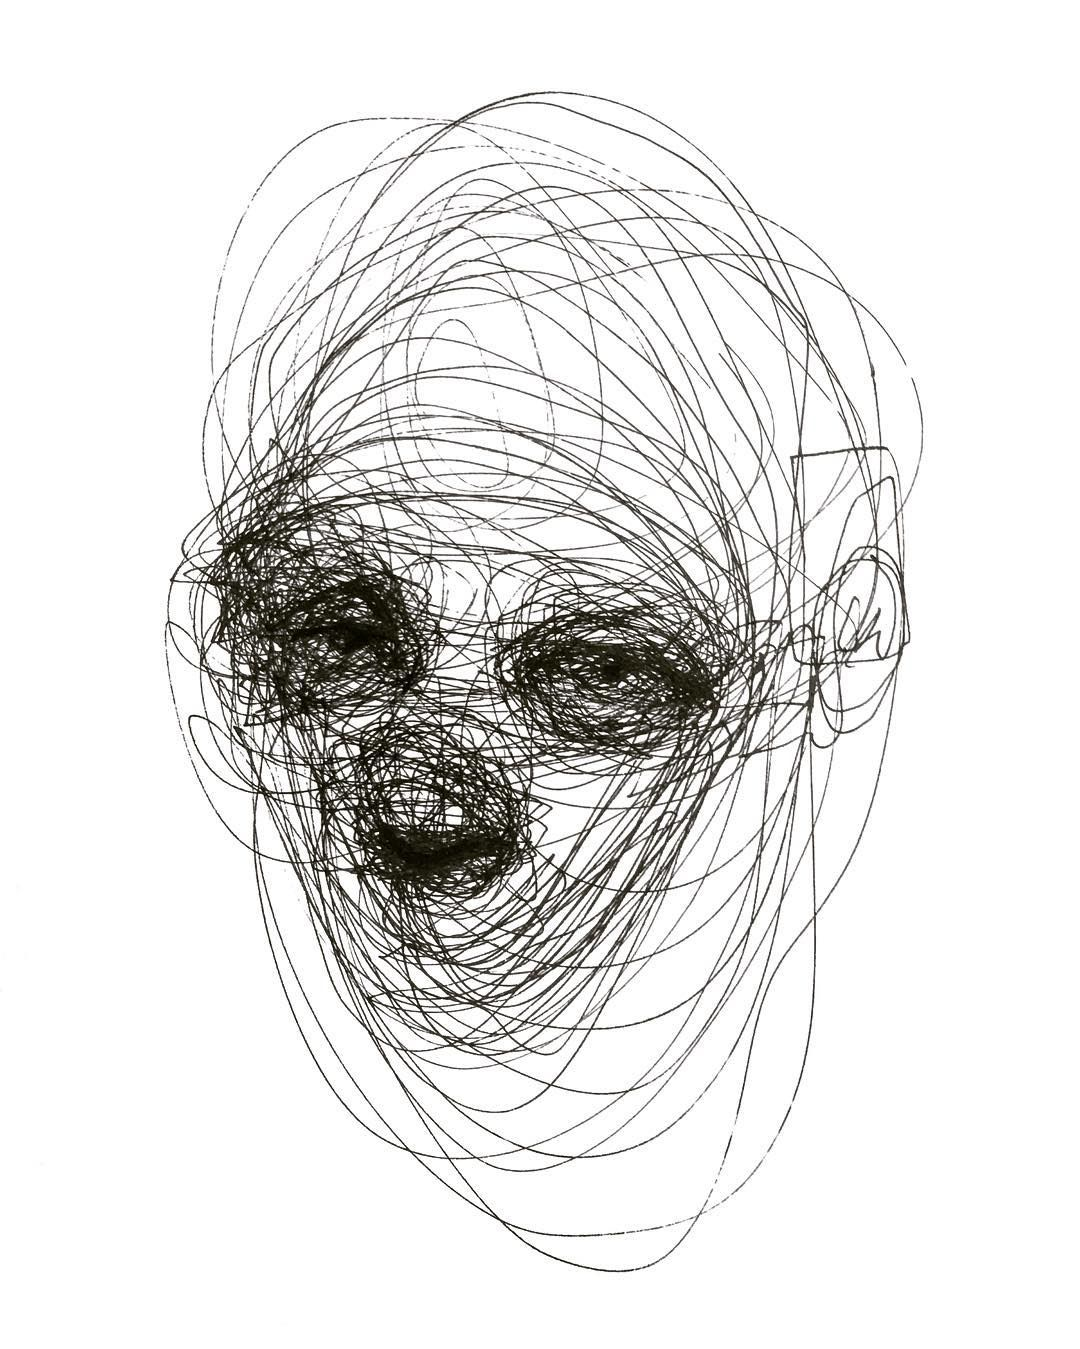 Pen On Paper Ballpointpen Sketch Face Lines Ink